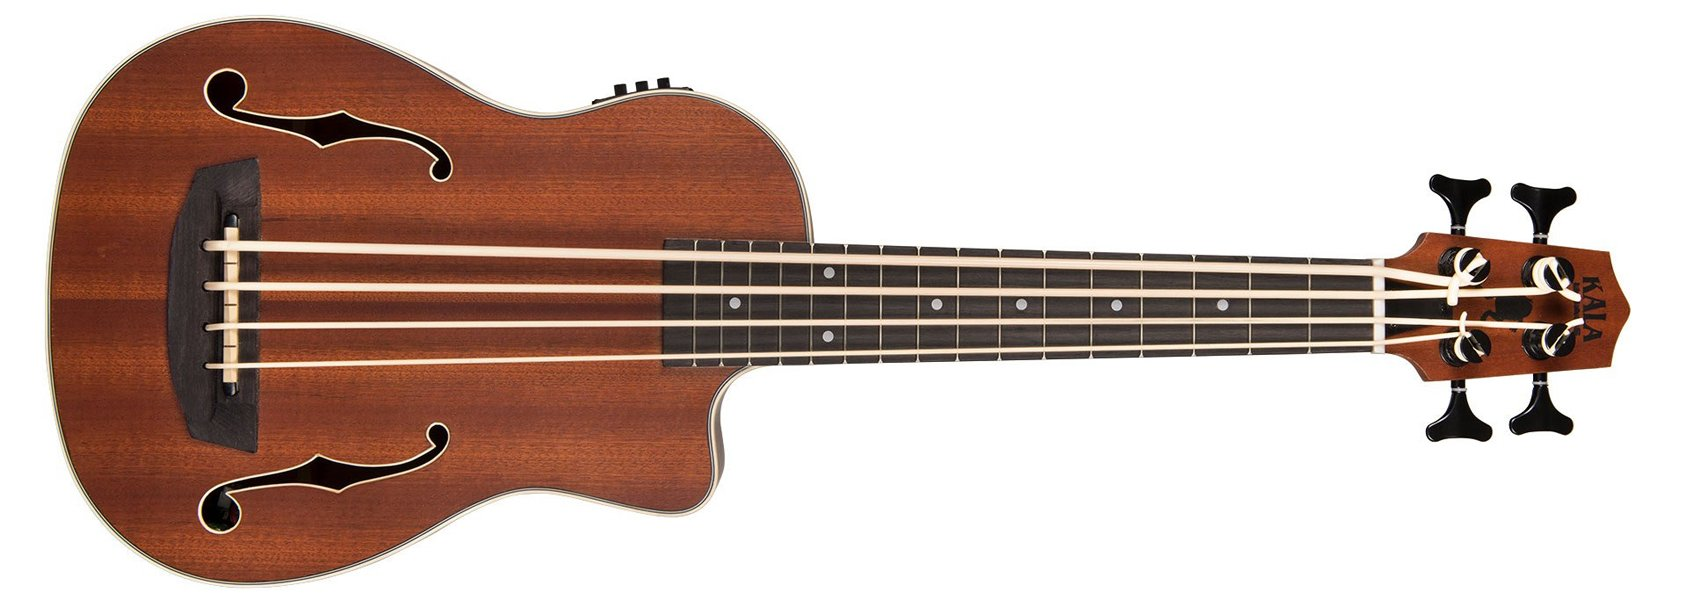 Kala Journeyman Mahogany Acoustic Electric U-Bass